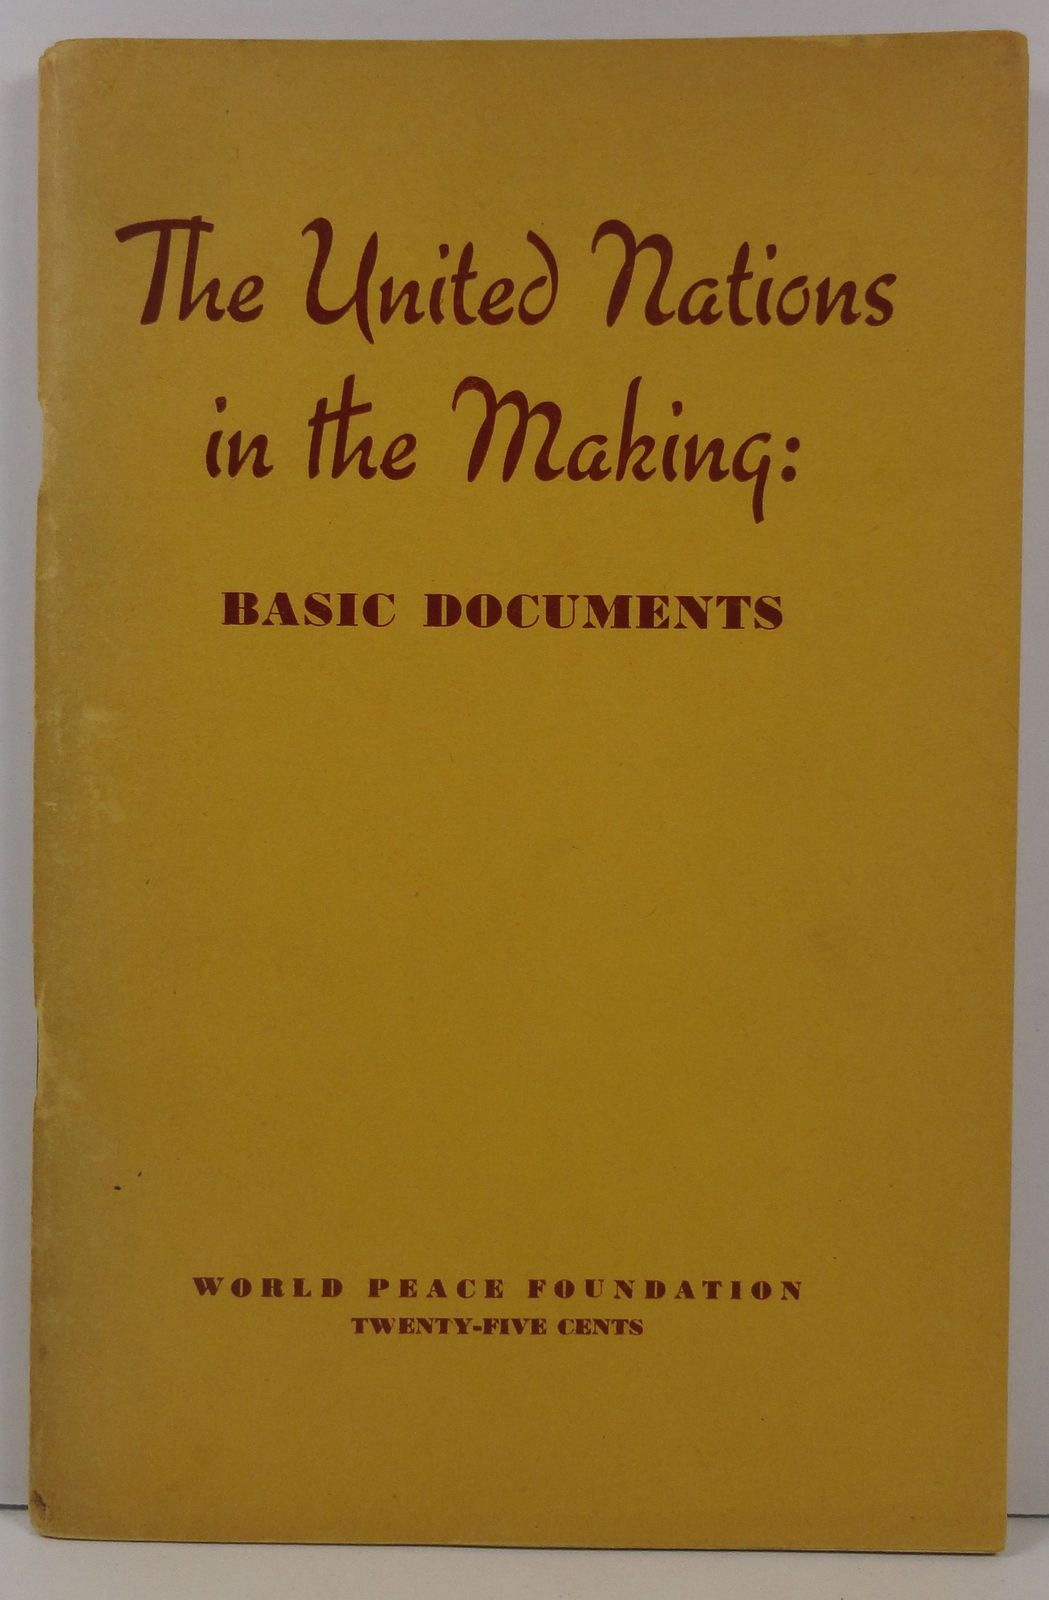 The United Nations in the Making: Basic Documents 1945